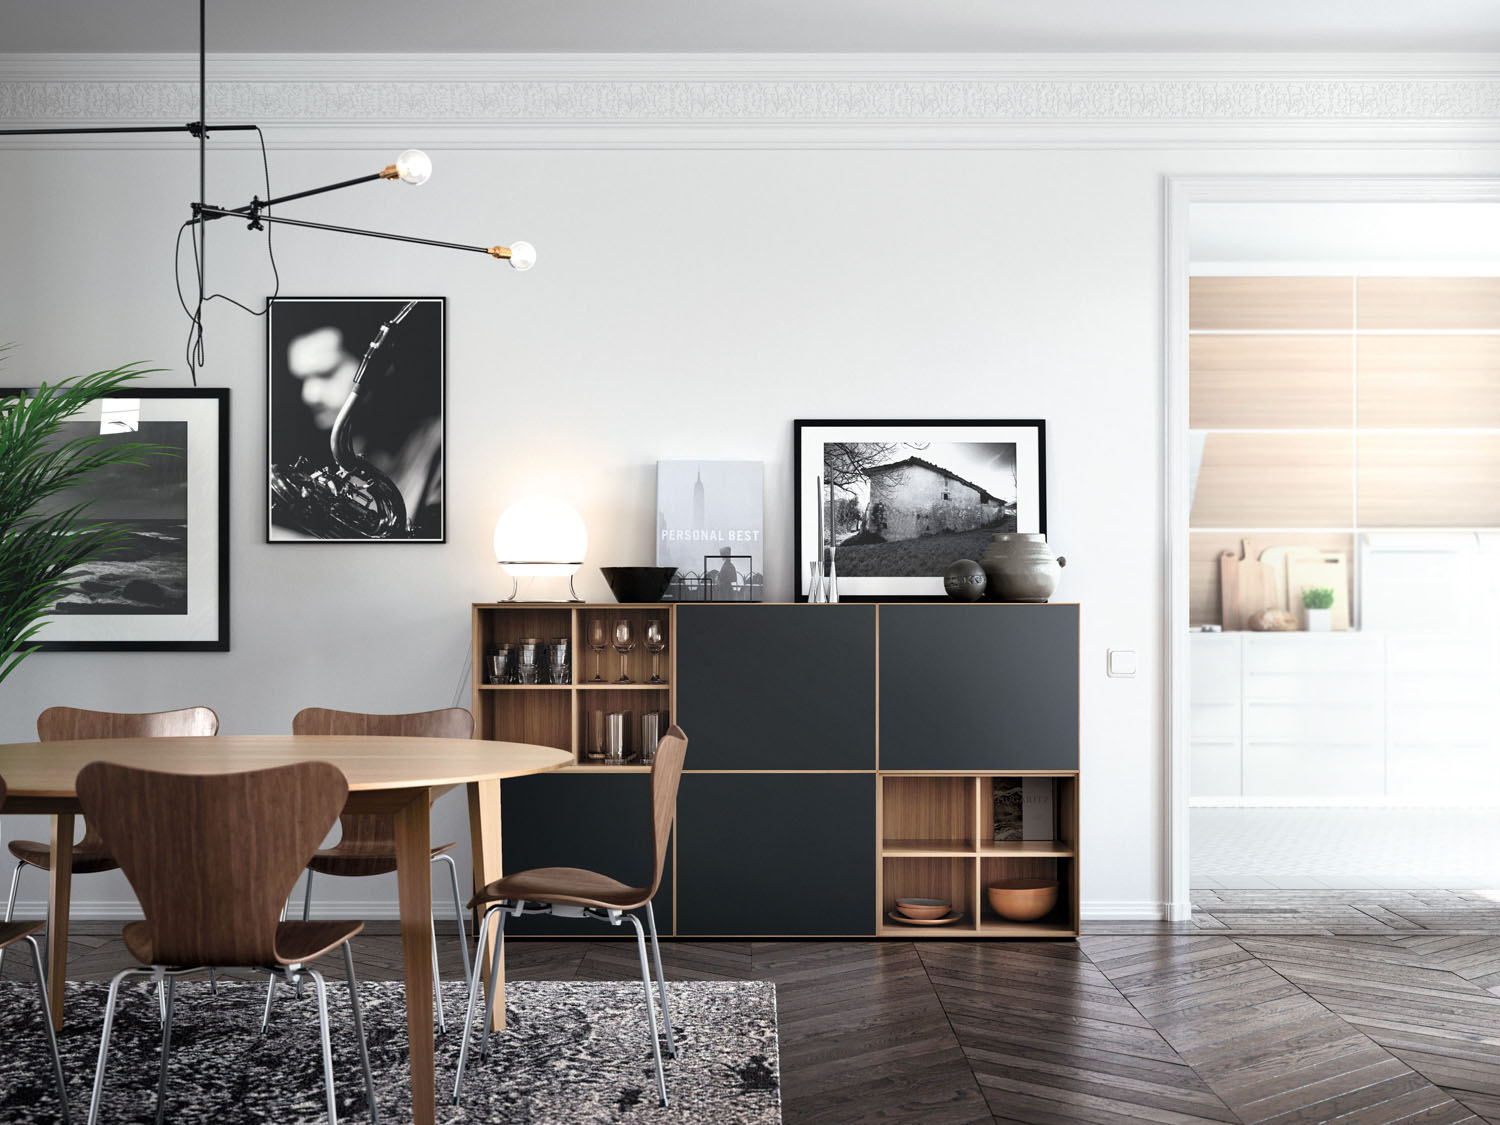 lauki exil wohnmagazin. Black Bedroom Furniture Sets. Home Design Ideas